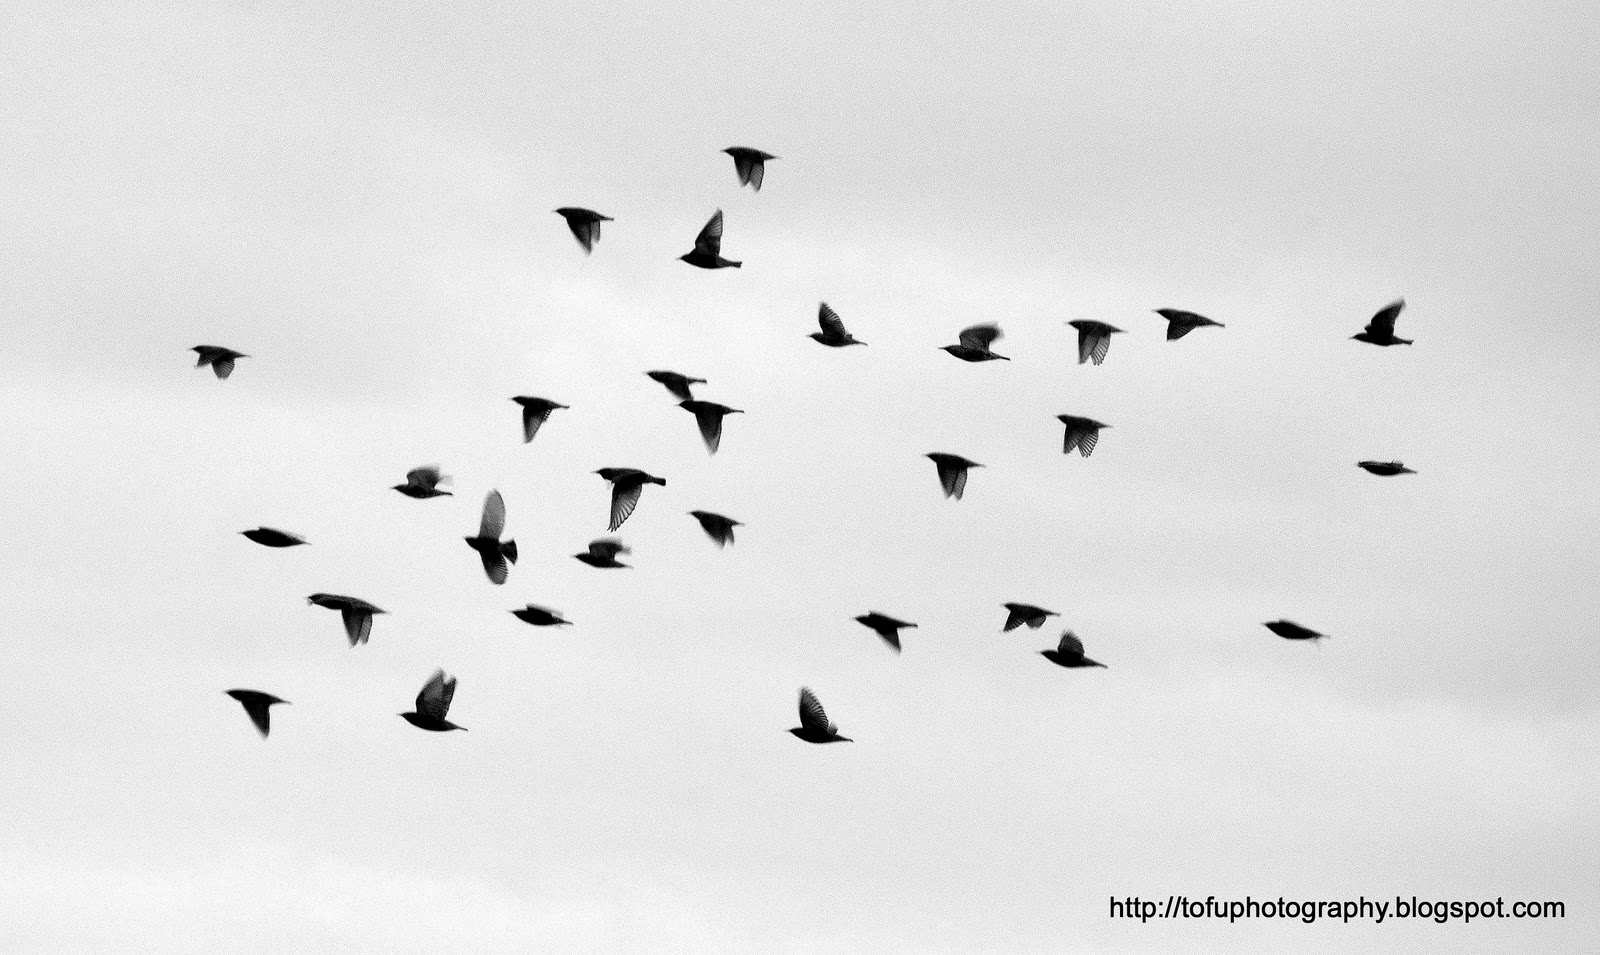 Flying birds silhouette tumblr